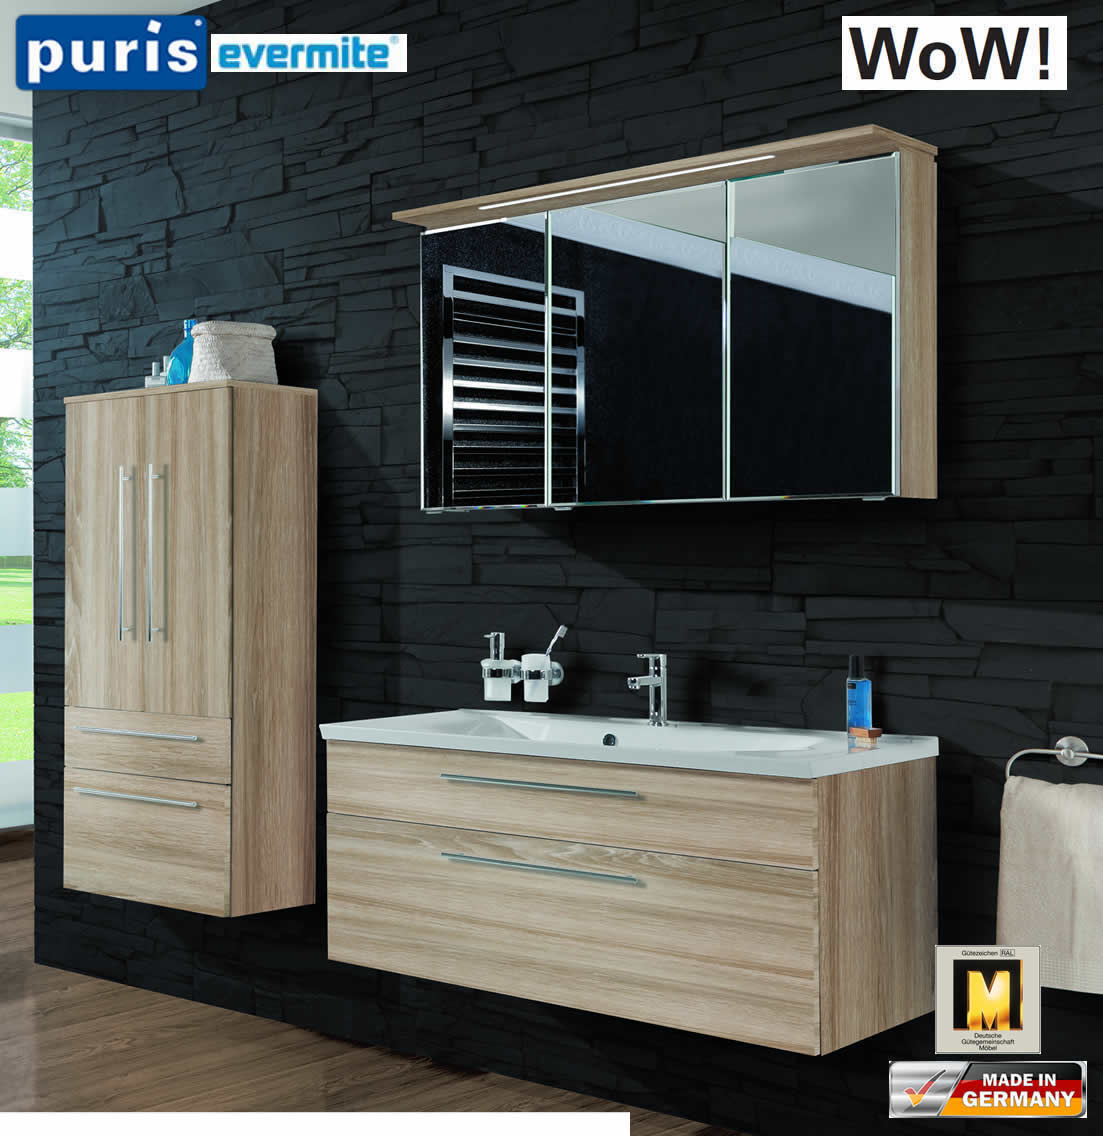 puris wow badm bel set 110 cm in eiche hell 3tlg mit evermite waschtisch impuls home. Black Bedroom Furniture Sets. Home Design Ideas